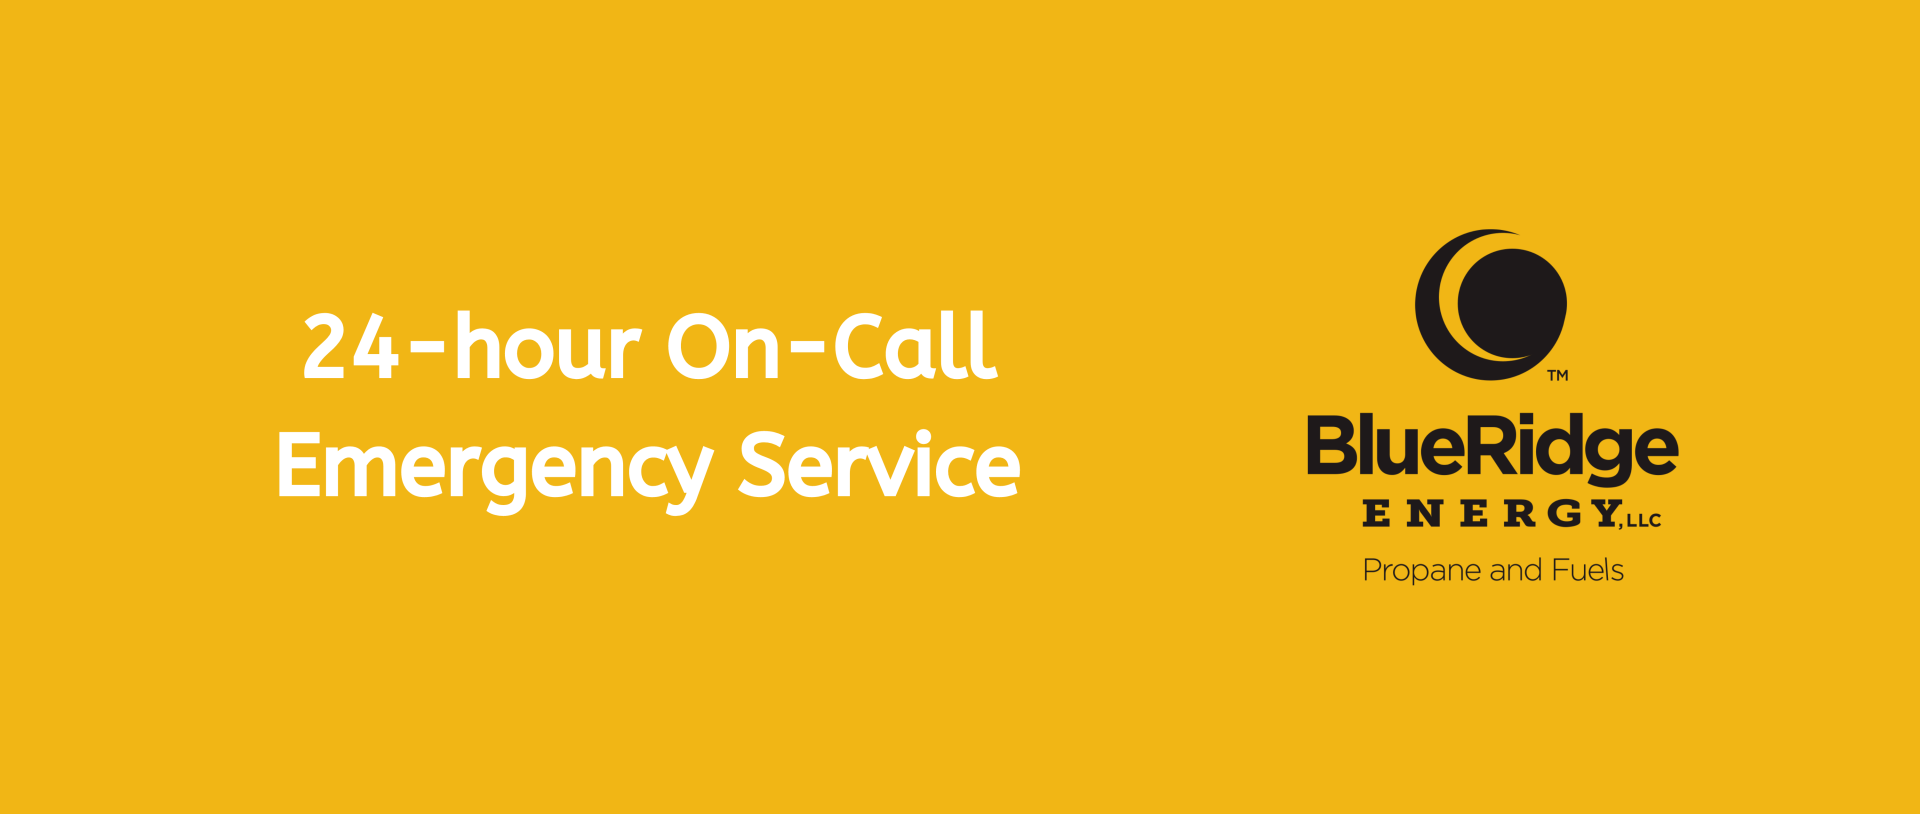 24-hour On-call Emergency Service